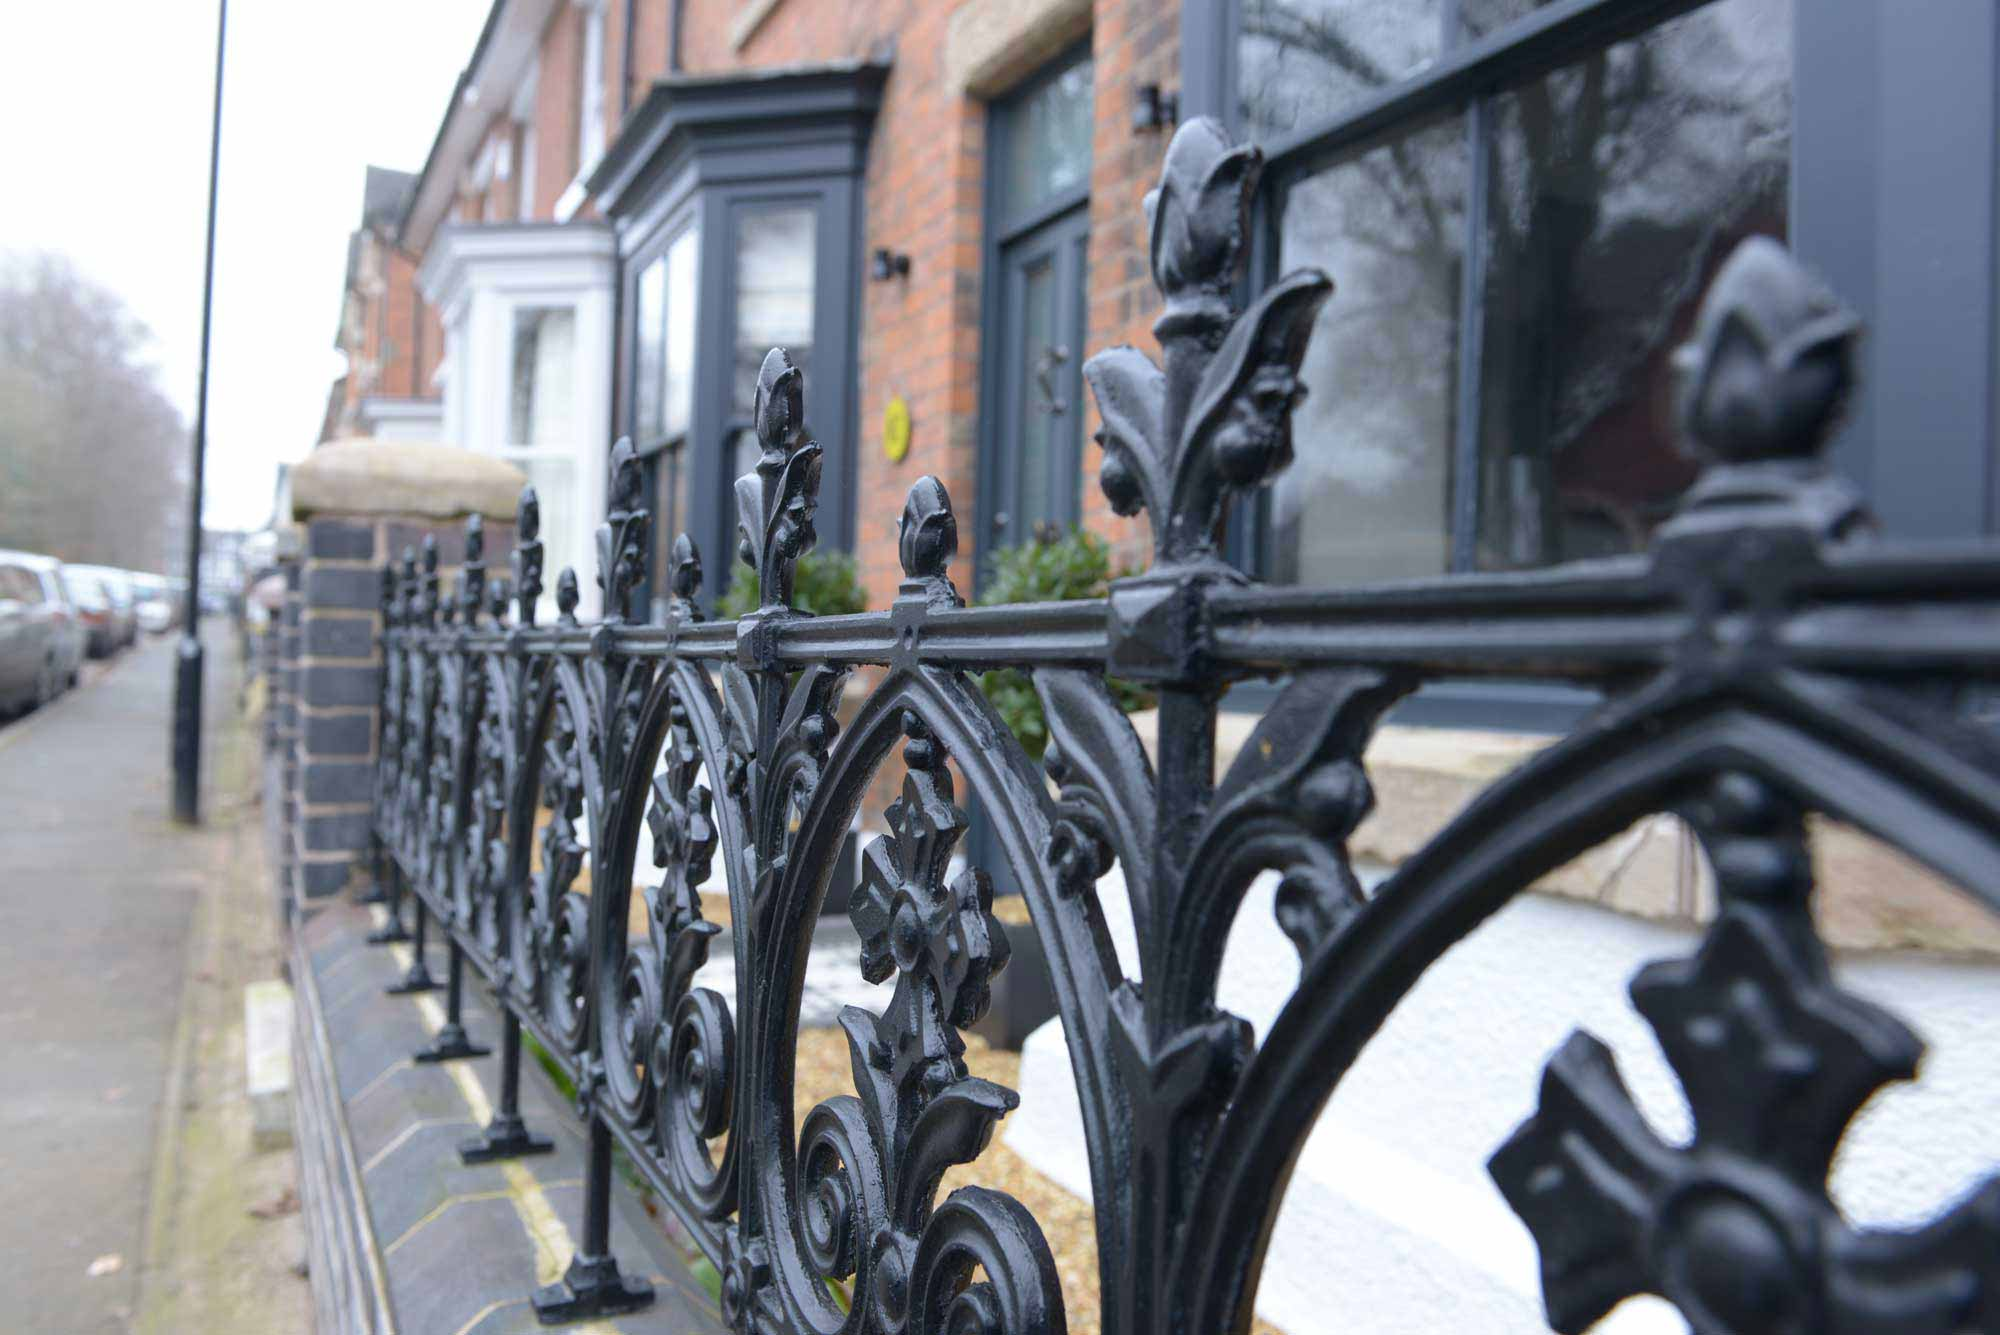 town house cast iron railing on wall